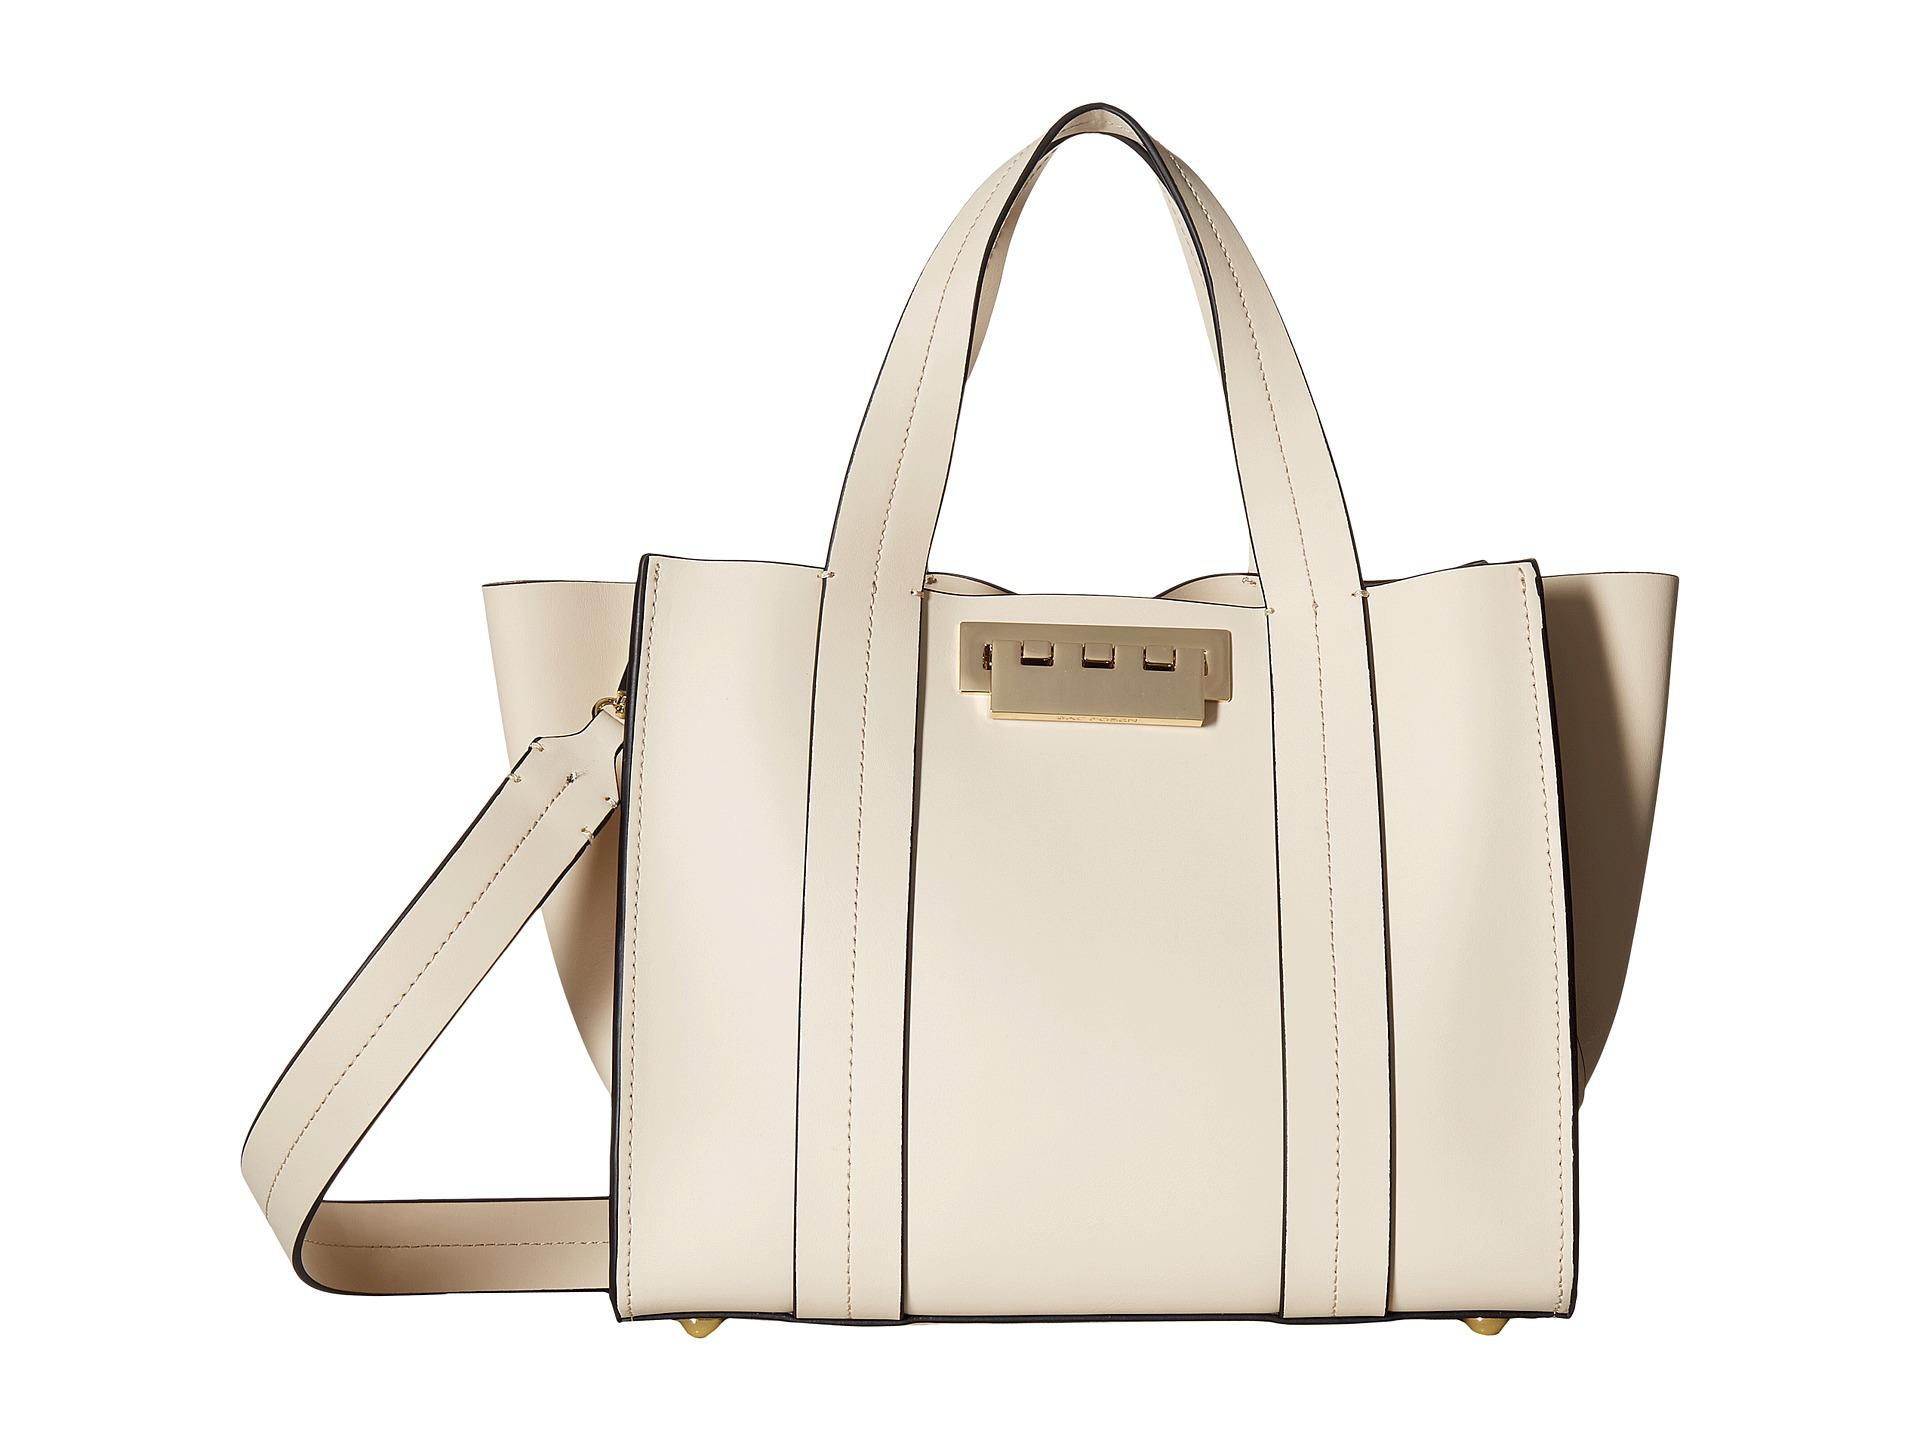 Eartha Iconic Small Shopper Bag Zac Posen Limited Edition Order Cheap Price Footaction Cheap Price 82OWlnO